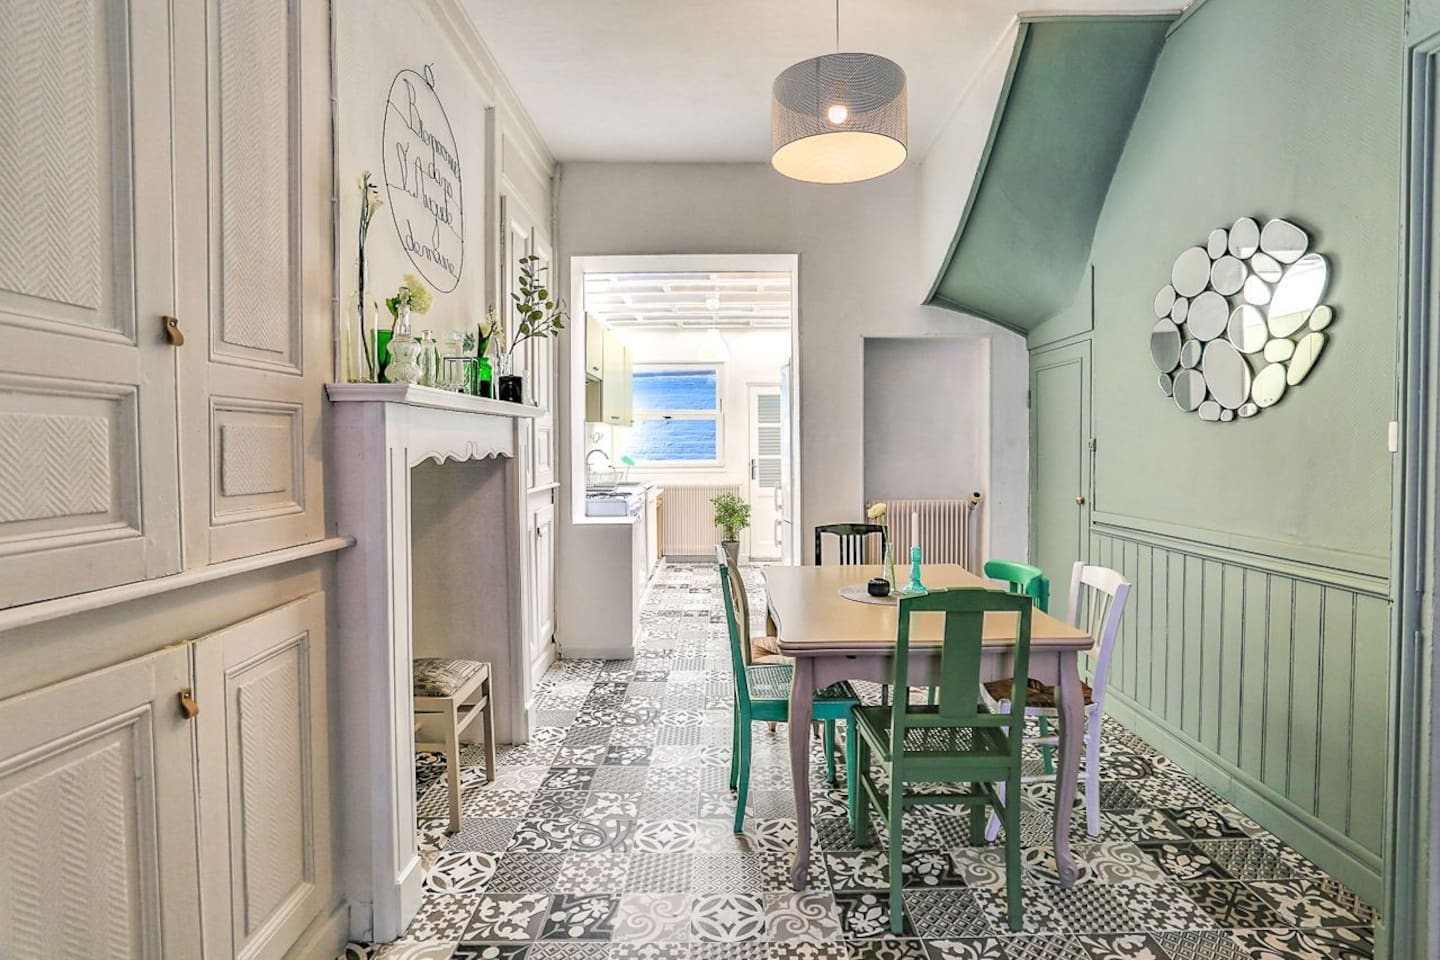 Decoratrice D Interieur Amiens l'auguste - houses for rent in amiens